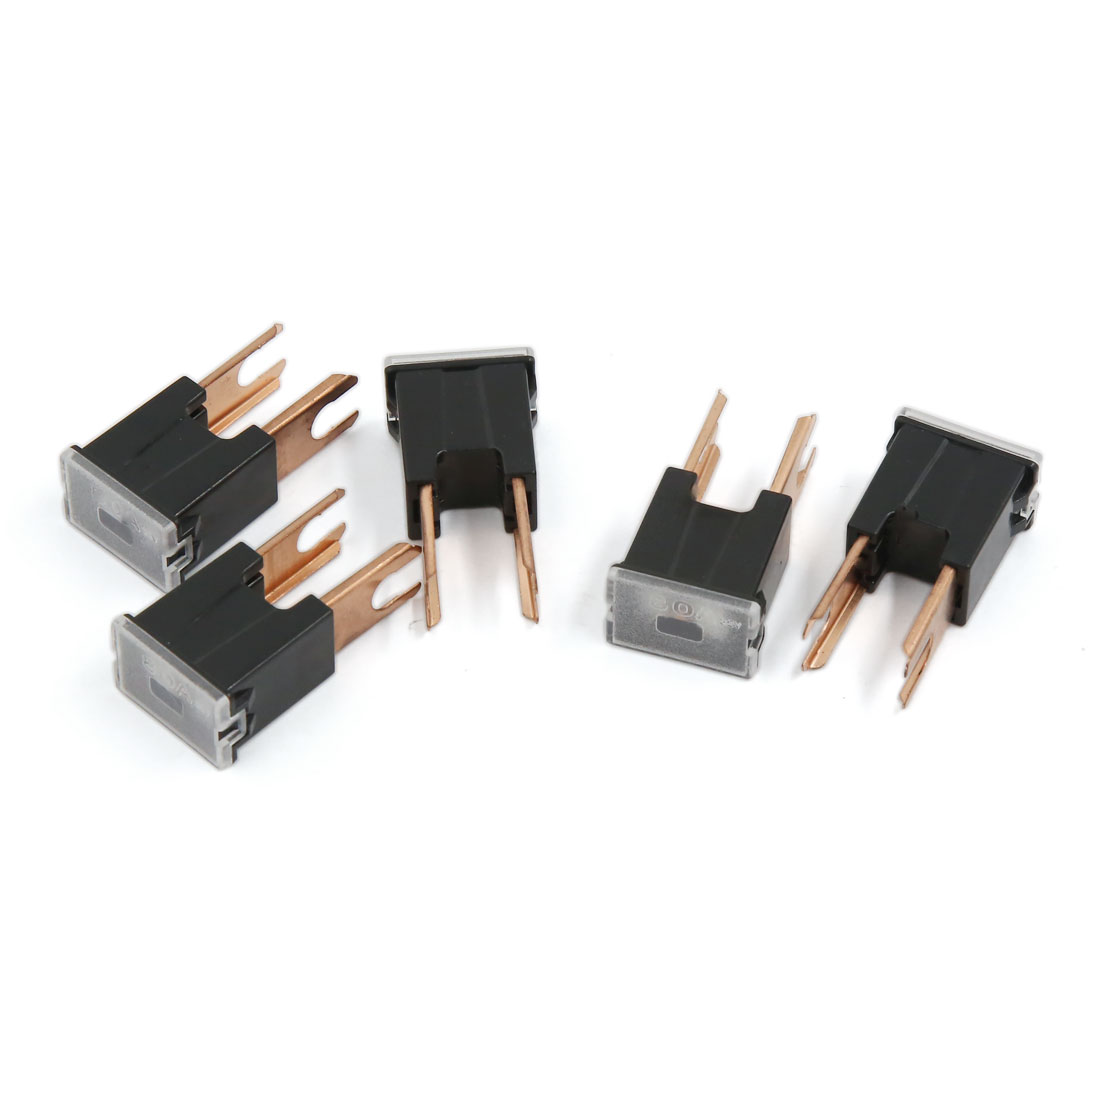 5 Pcs 32V 80A 2 Terminals Plug-in Type Male PAL Auto Link Fuse Black